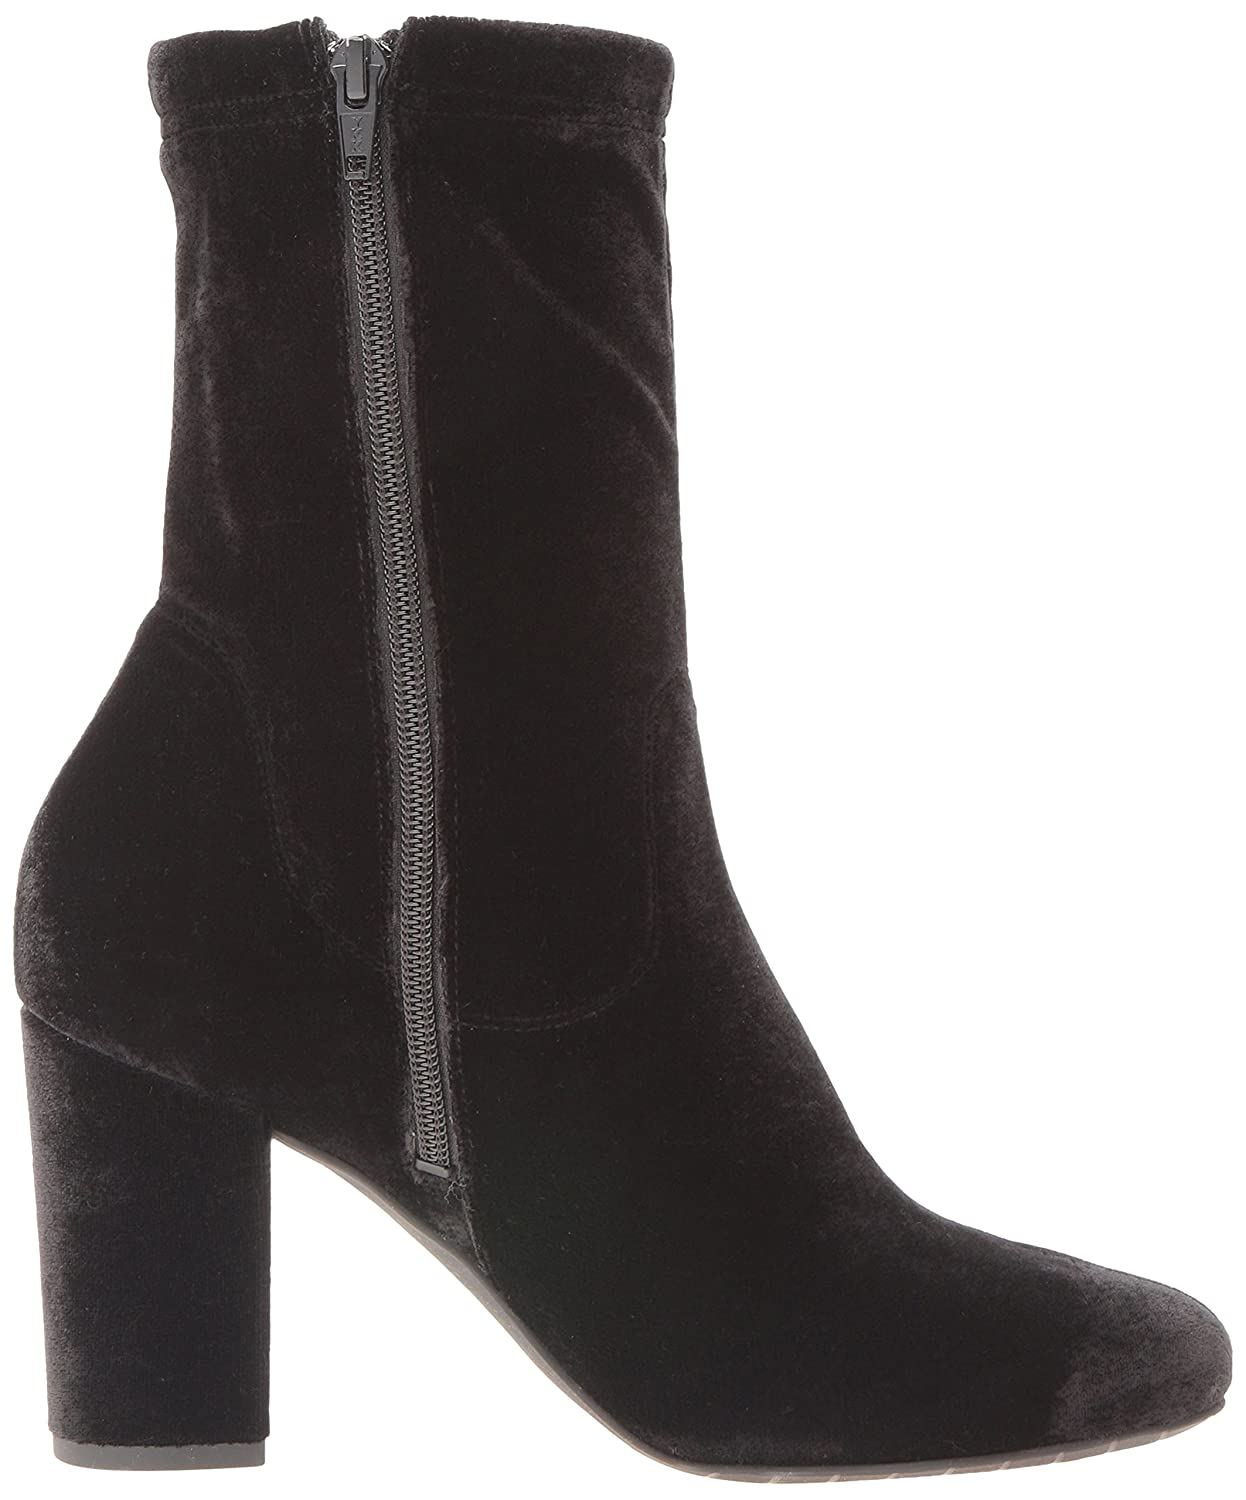 Kenneth Cole New York Women's Alyssa Ankle Bootie B01MEERV75 6 B(M) US|Black Velvet